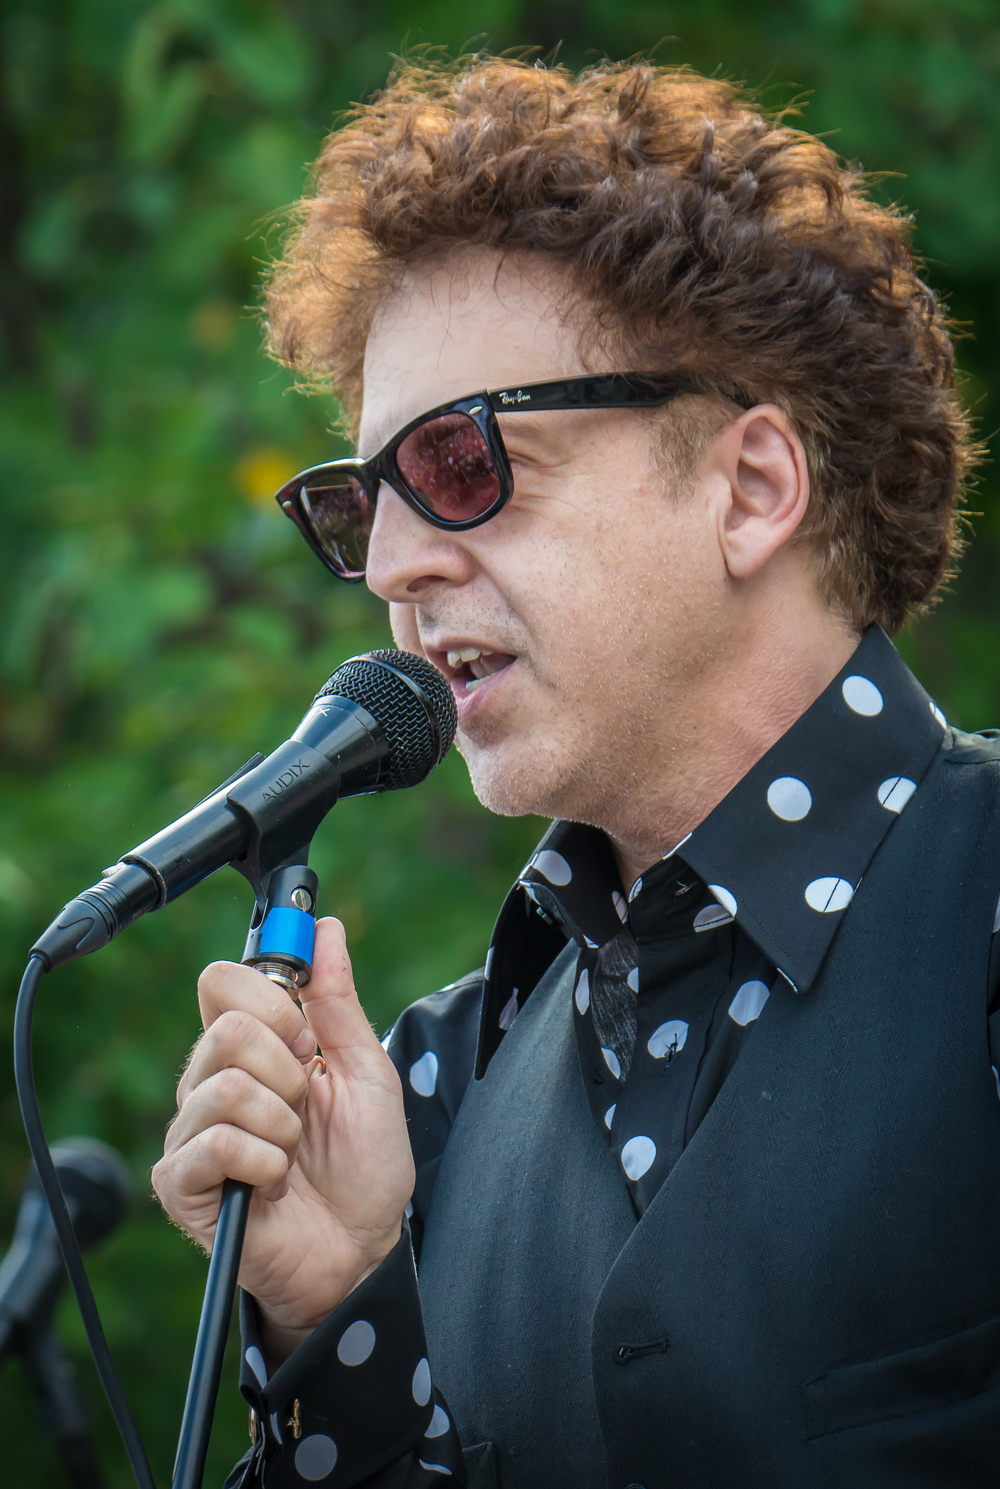 Magic Marc / Salute to the Music of Bob Dylan / The Veterans' Memorial Wolfe Park Amphitheater / St. Louis Park, Minnesota / August 9th, 2014 / Photo by Don Olson